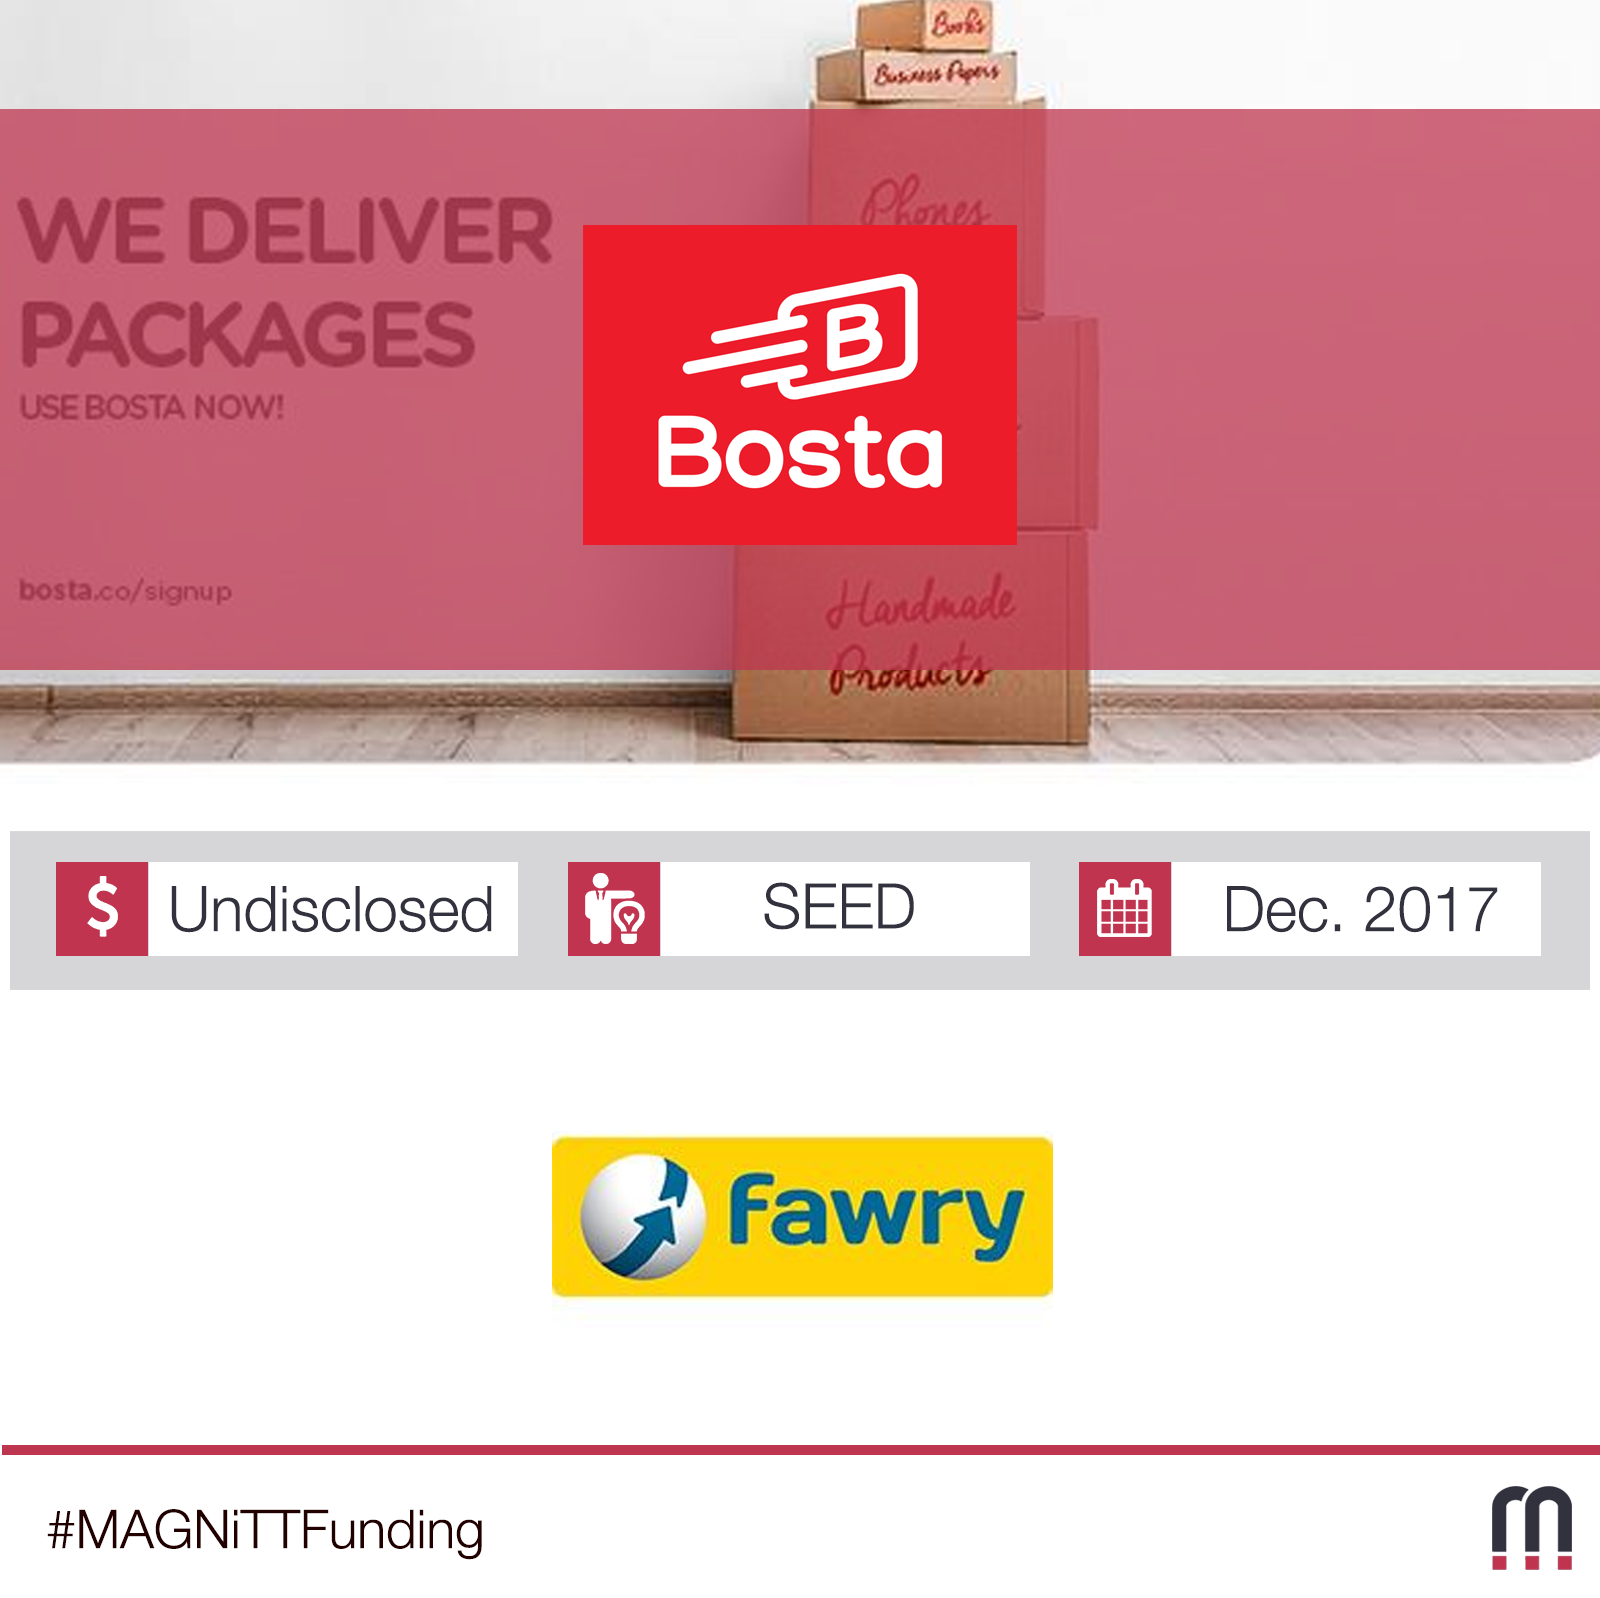 Egypt-based Bosta Receives Seed Investment from Fawry